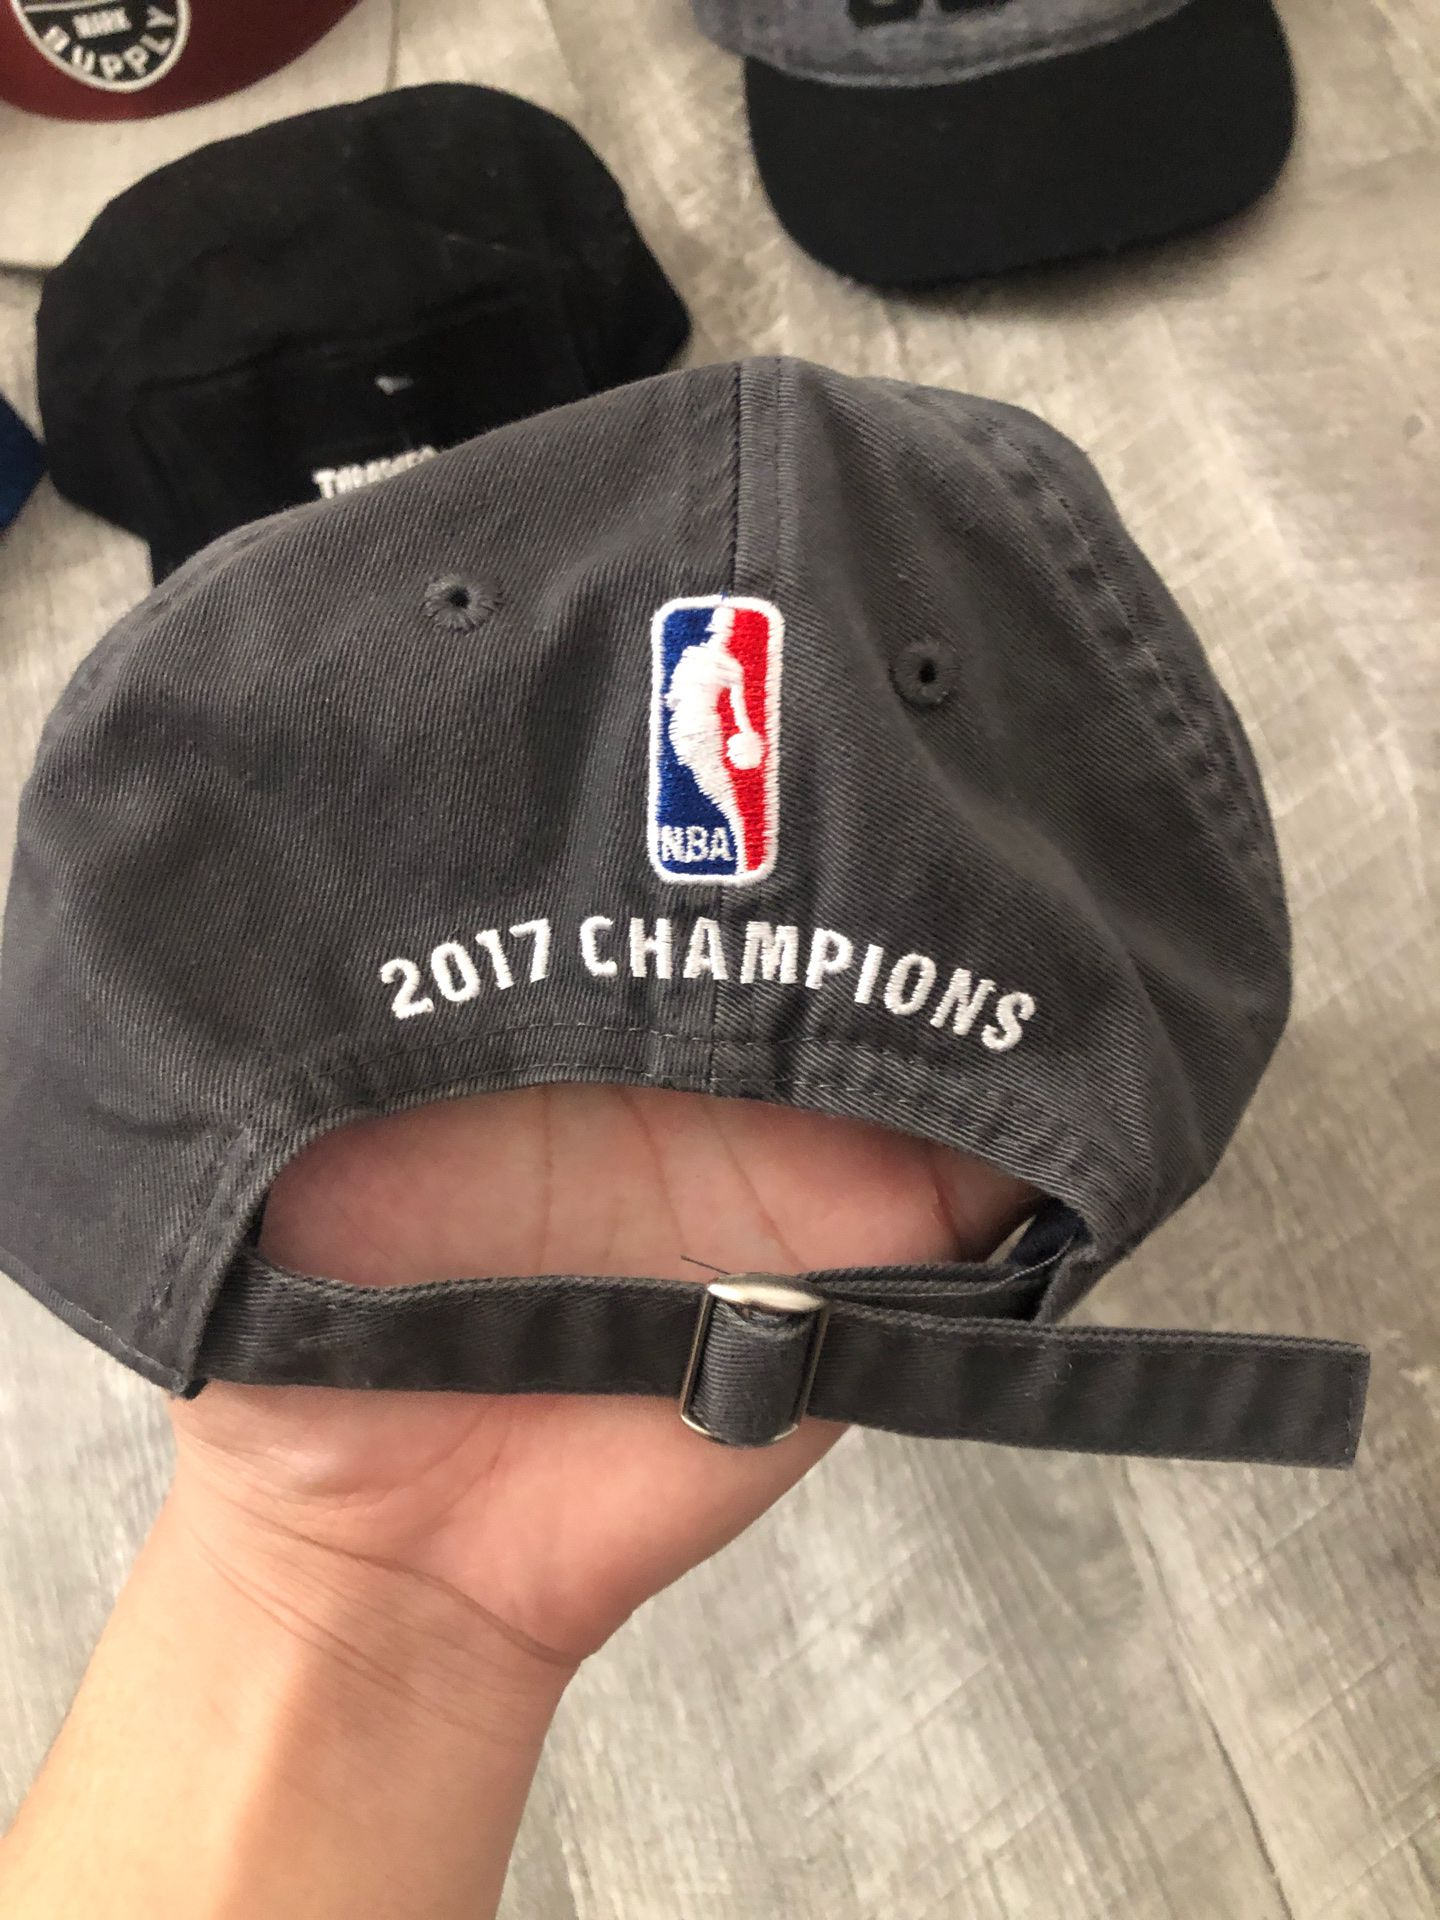 ADIDAS WARRIORS 2017 champs dad hat